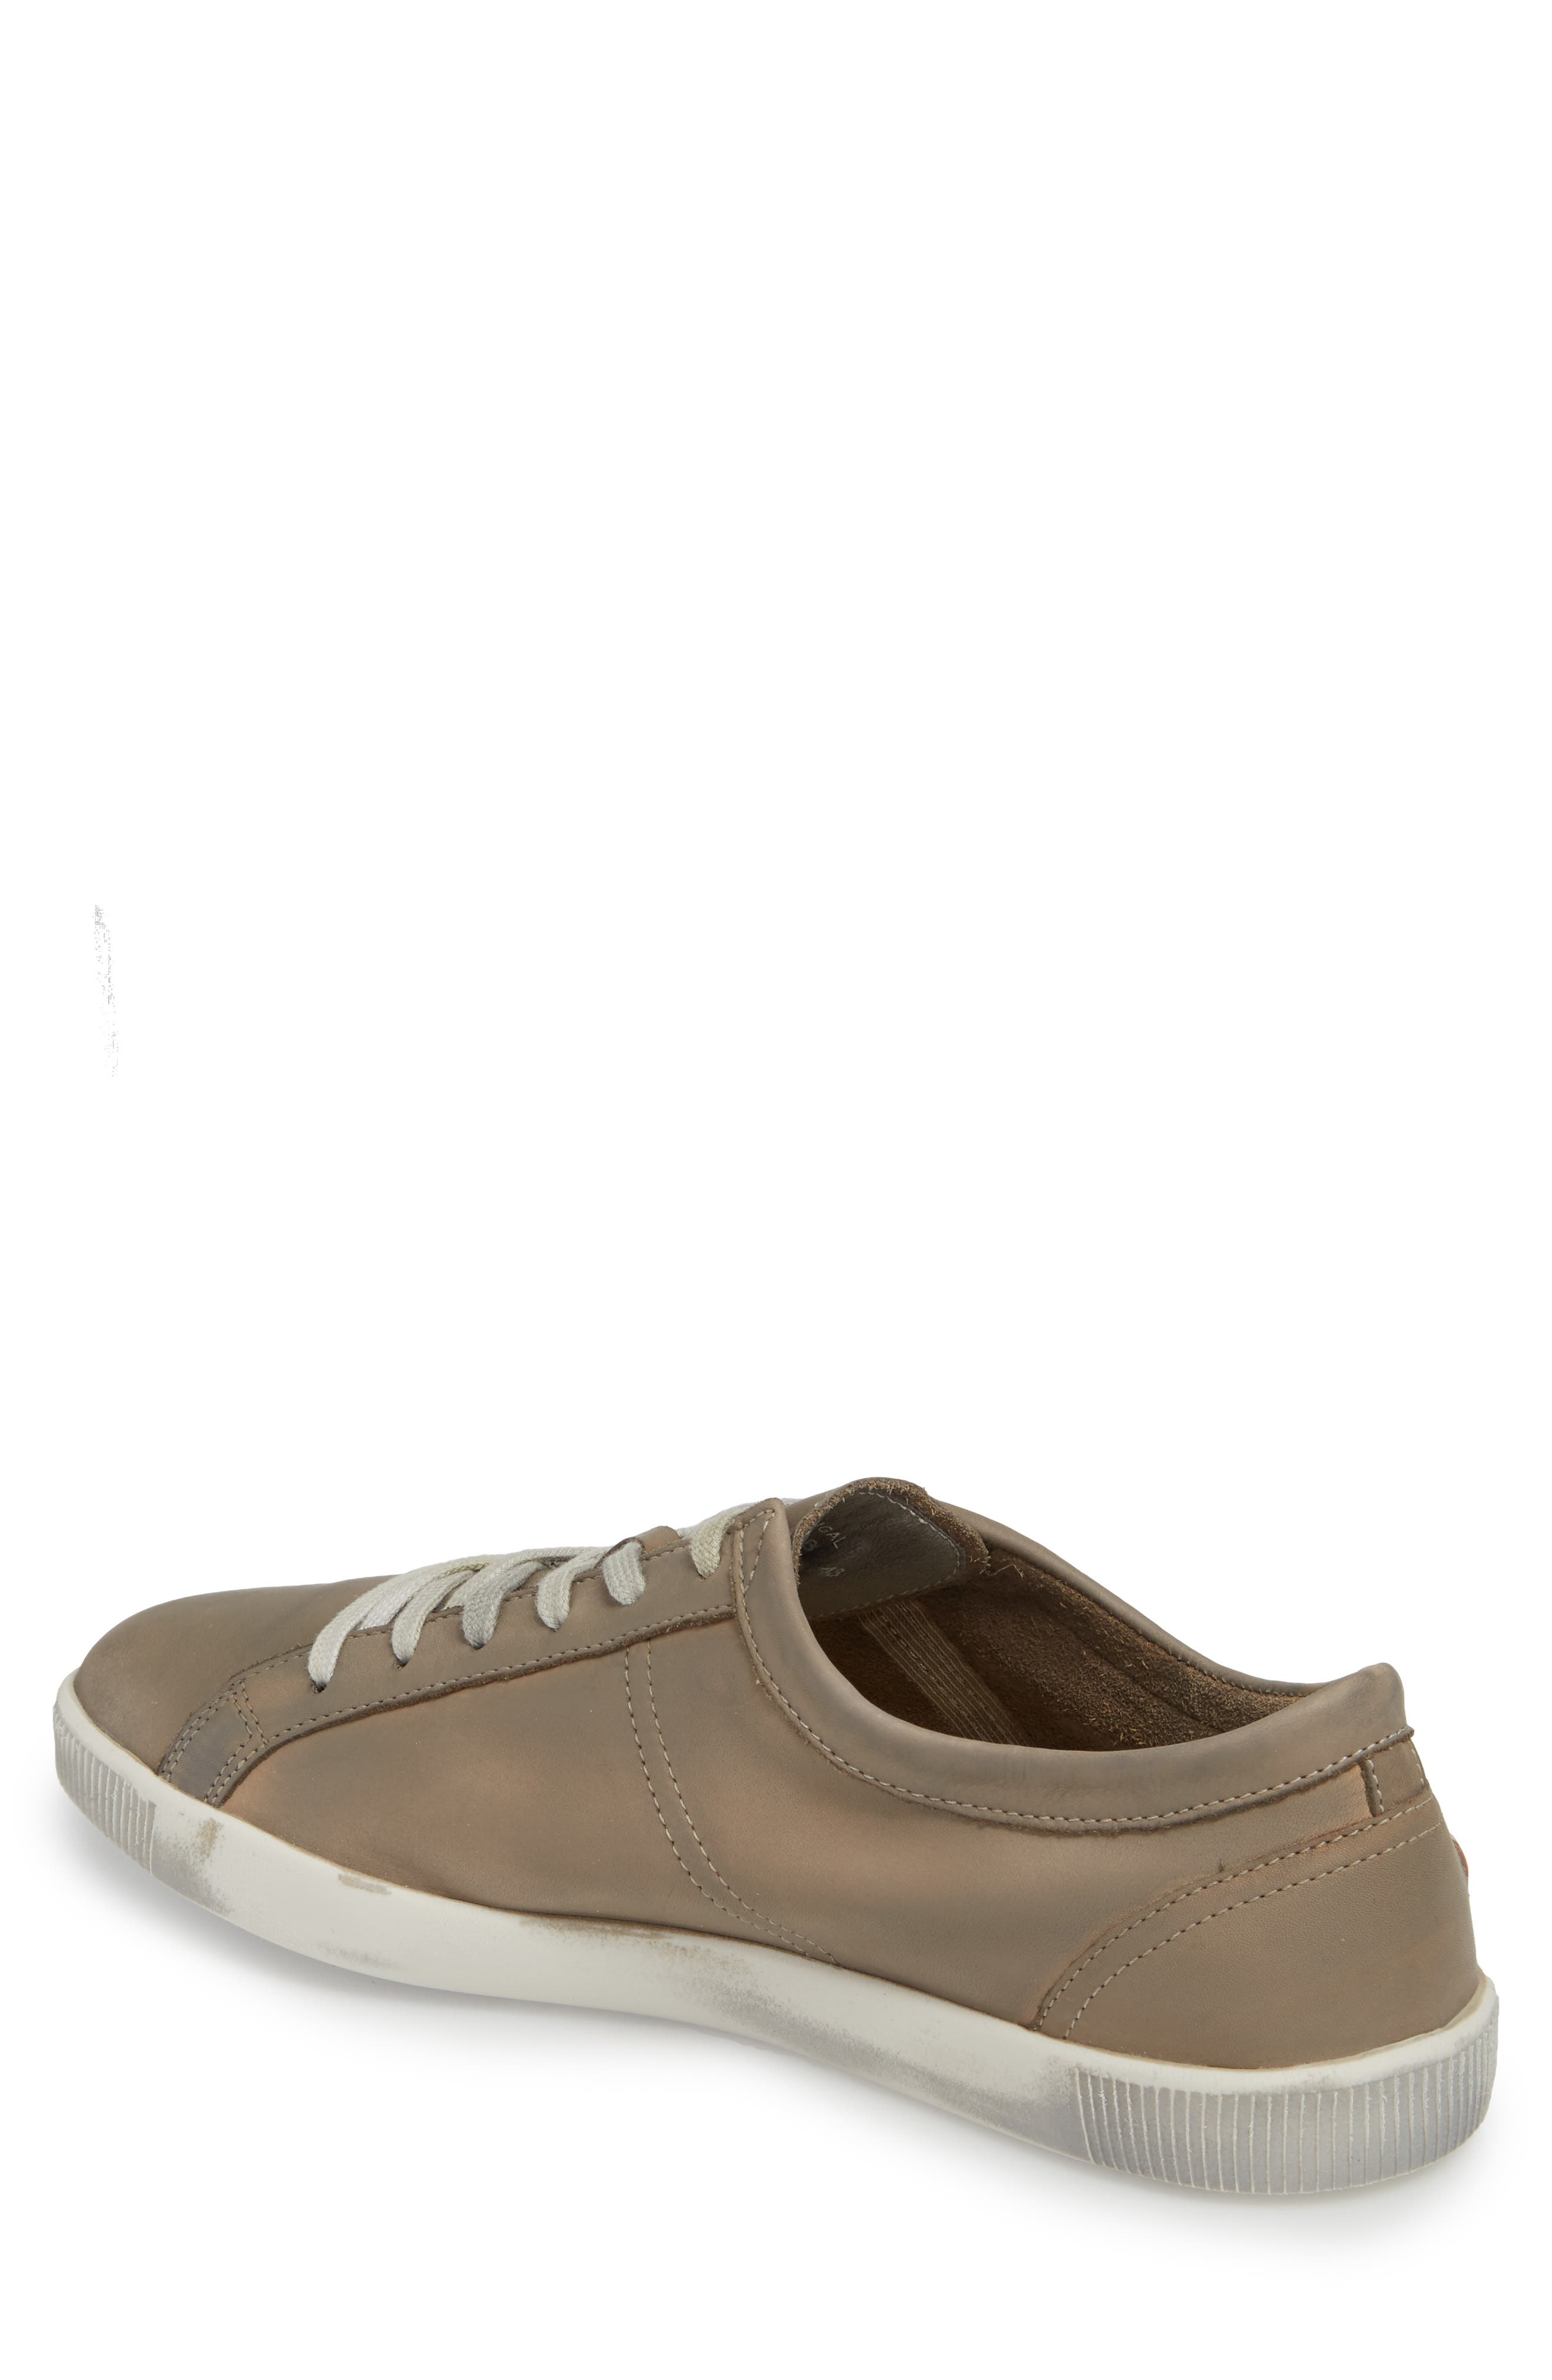 Tom Sneaker,                             Alternate thumbnail 2, color,                             Taupe Leather